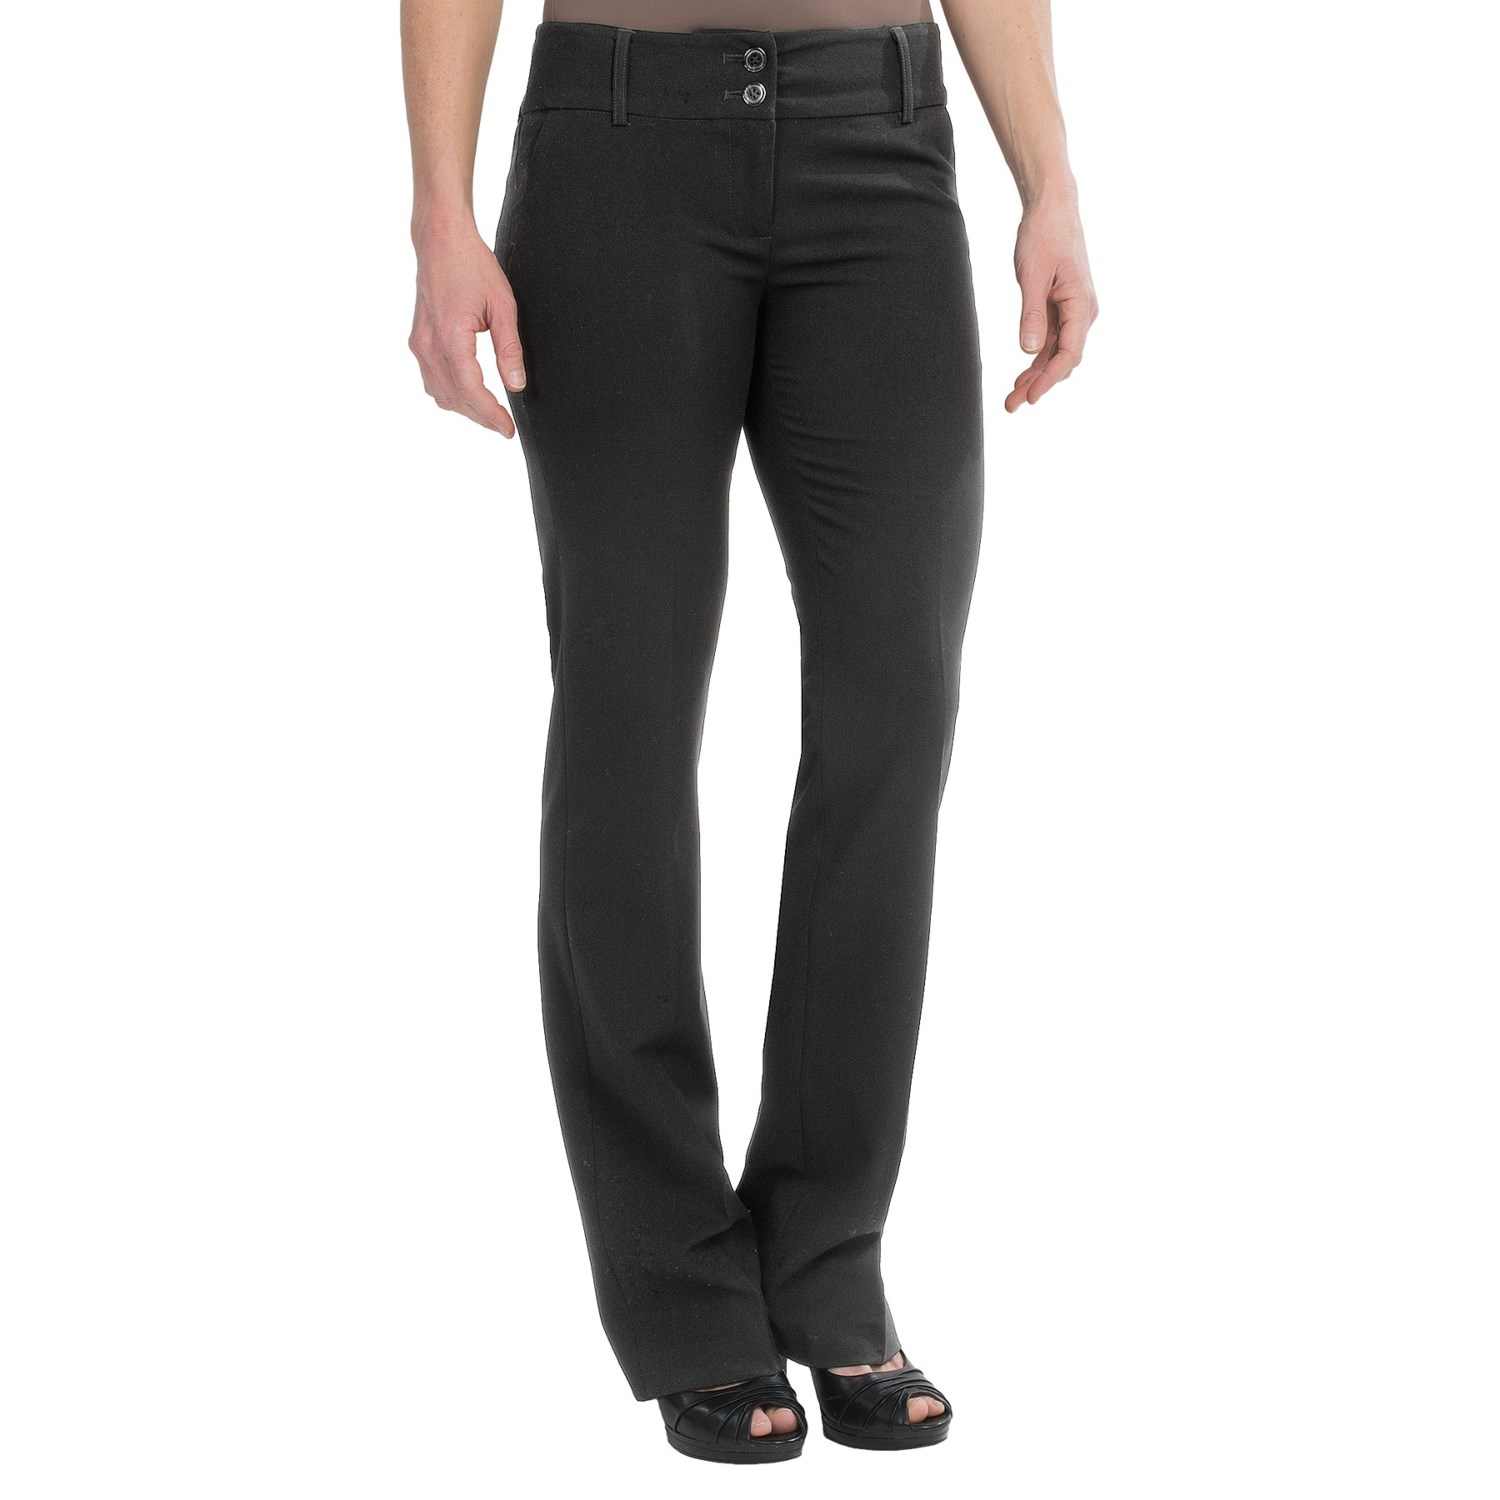 Excellent Considerations About Dress Pants For Tall Women Fashion Online Blog